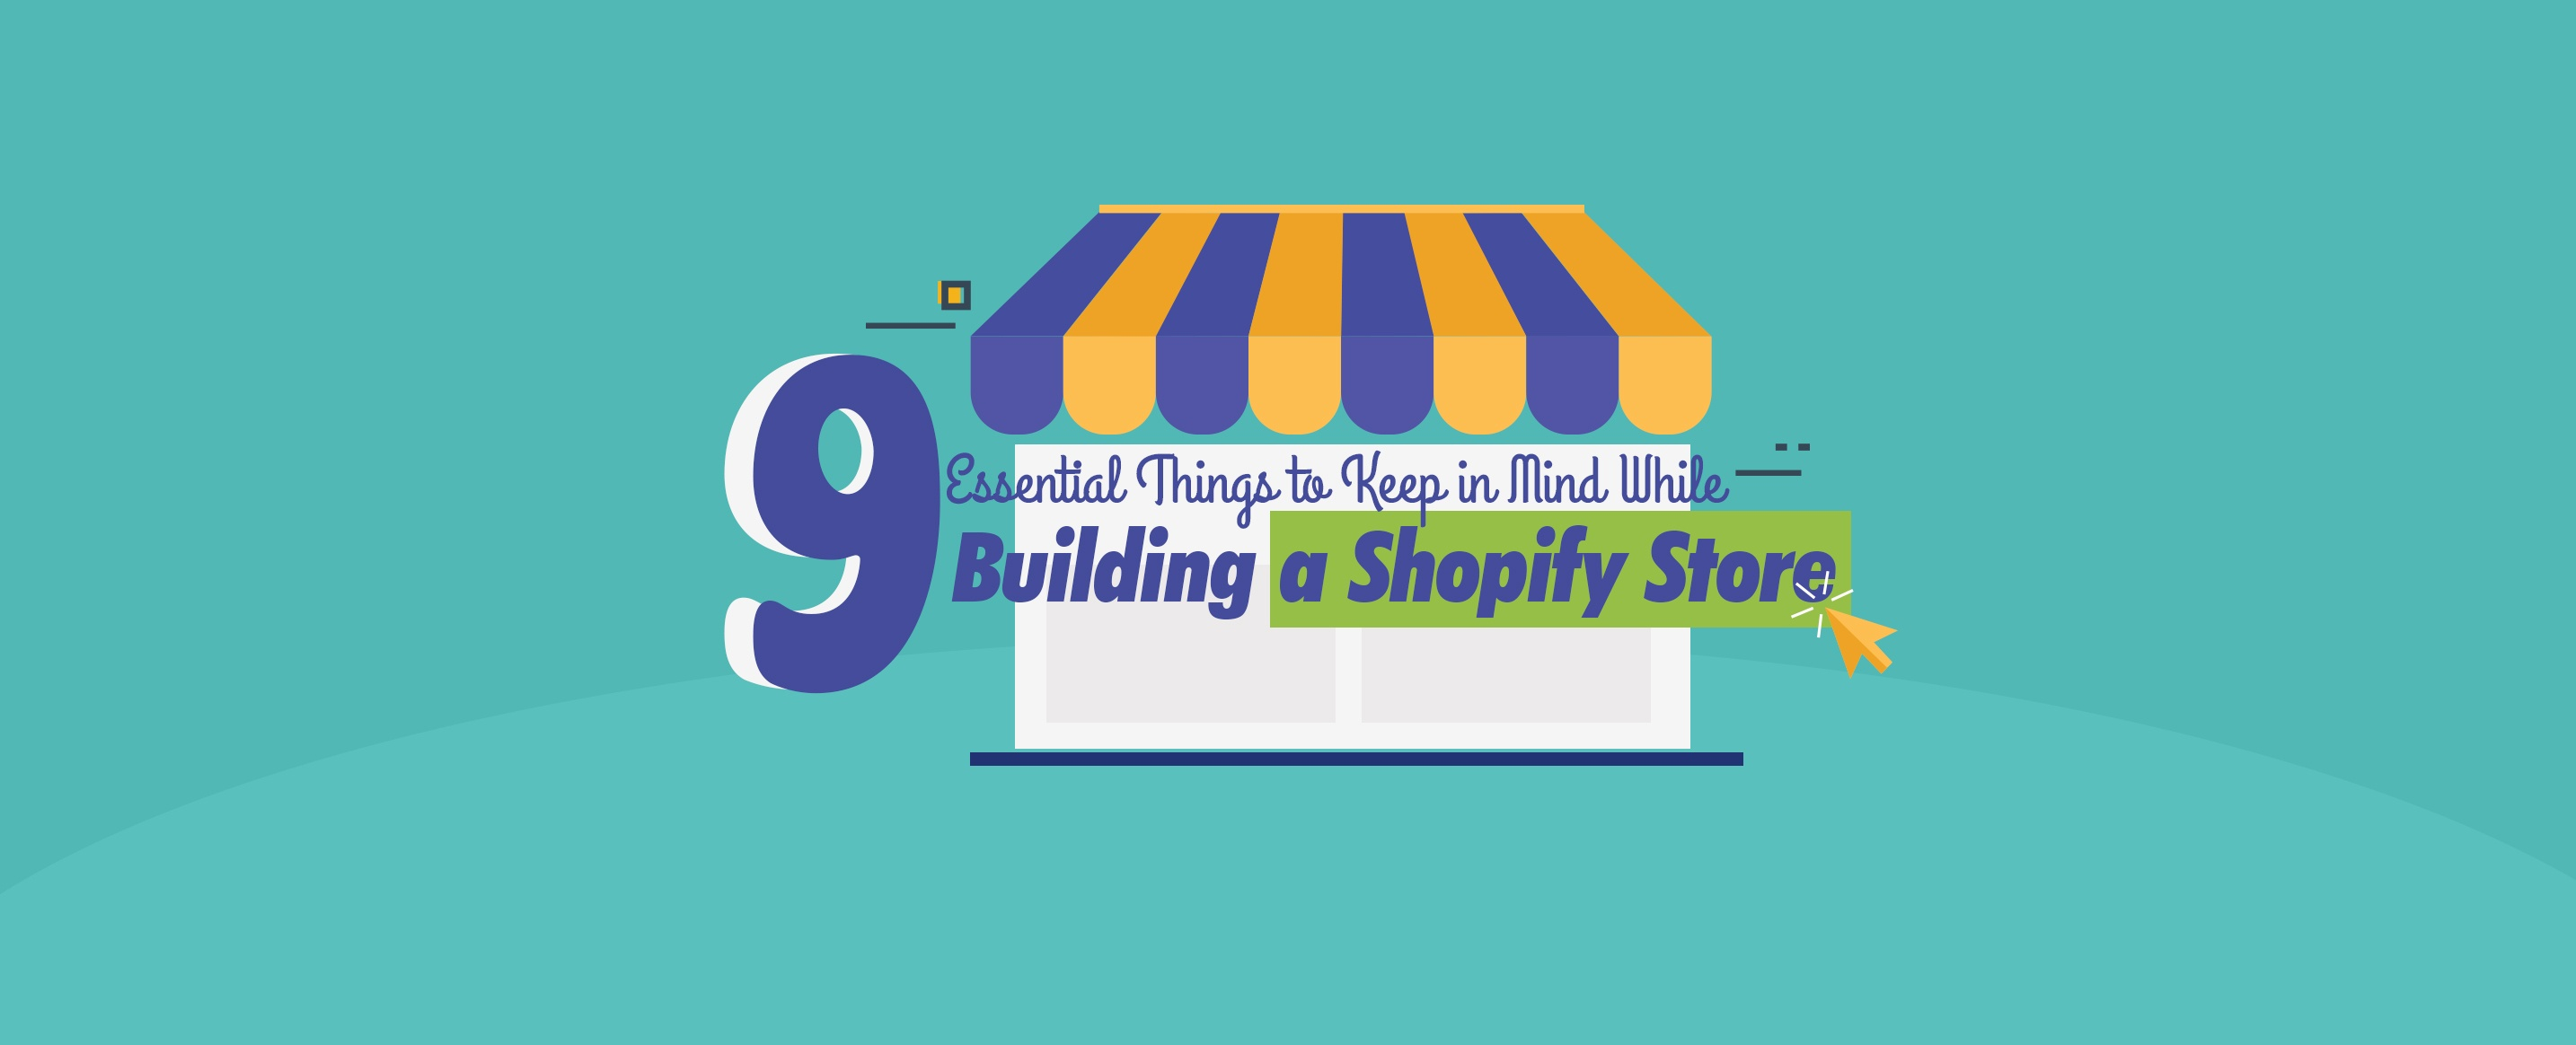 9-Essential-Things-to-Keep-in-Mind-While-Building-a-Shopify-Store